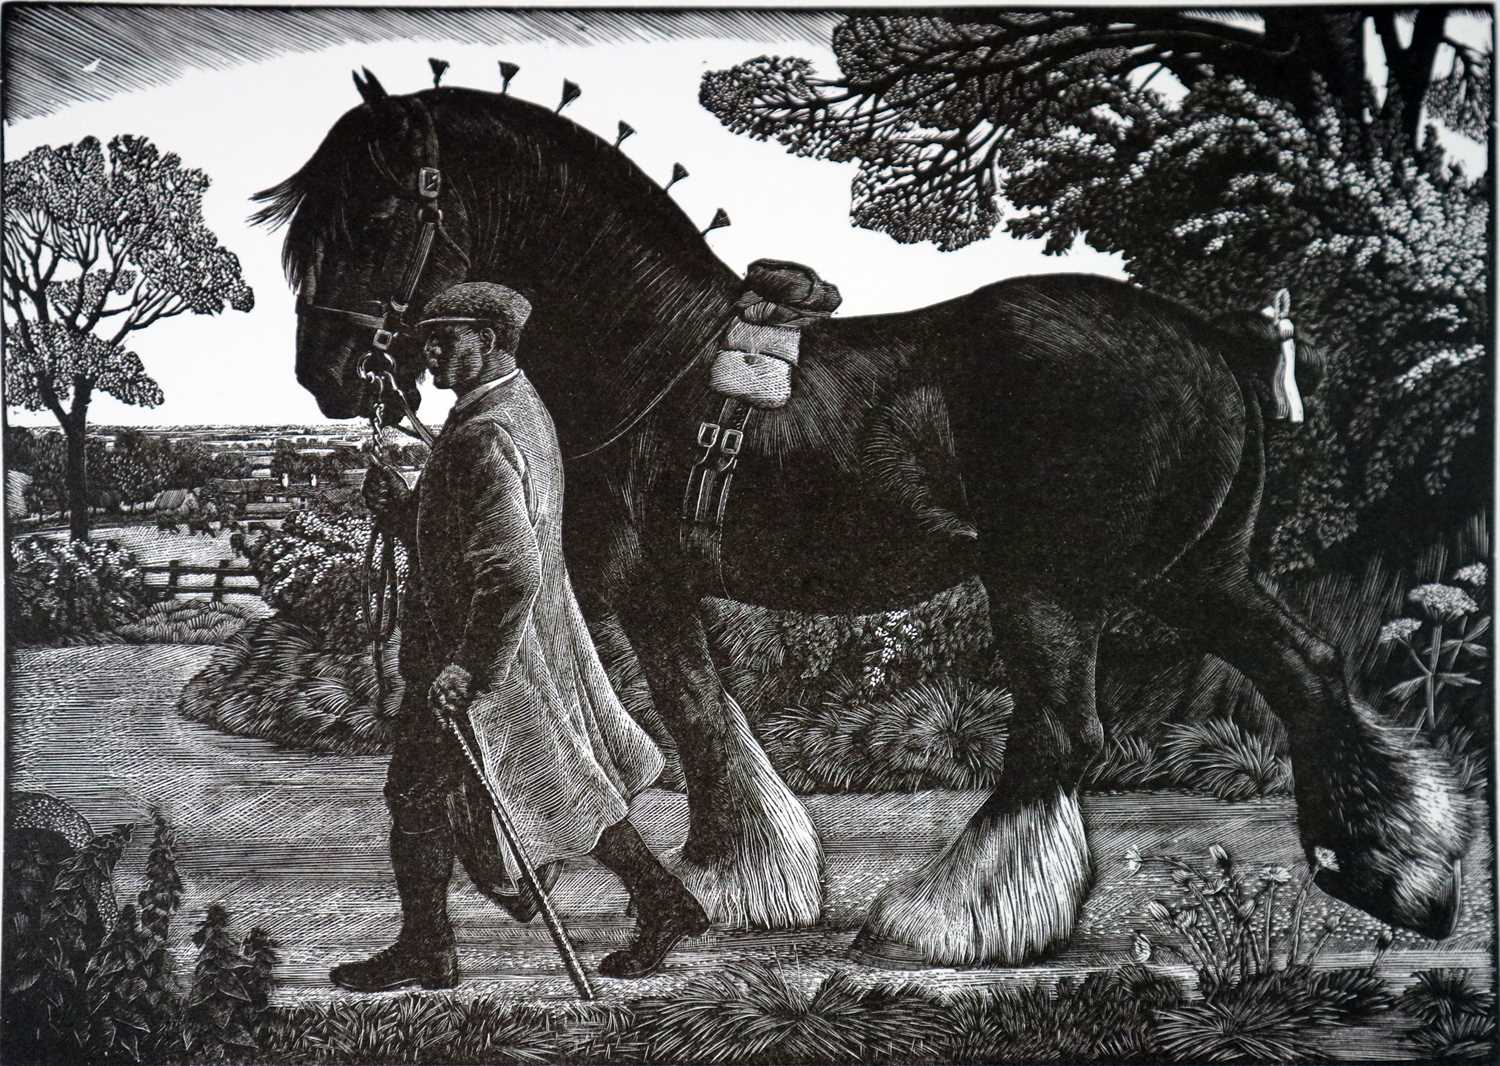 Charles Frederick Tunnicliffe OBE RA (1901-1979) The Memorial Collection Parts I and II - Image 4 of 19